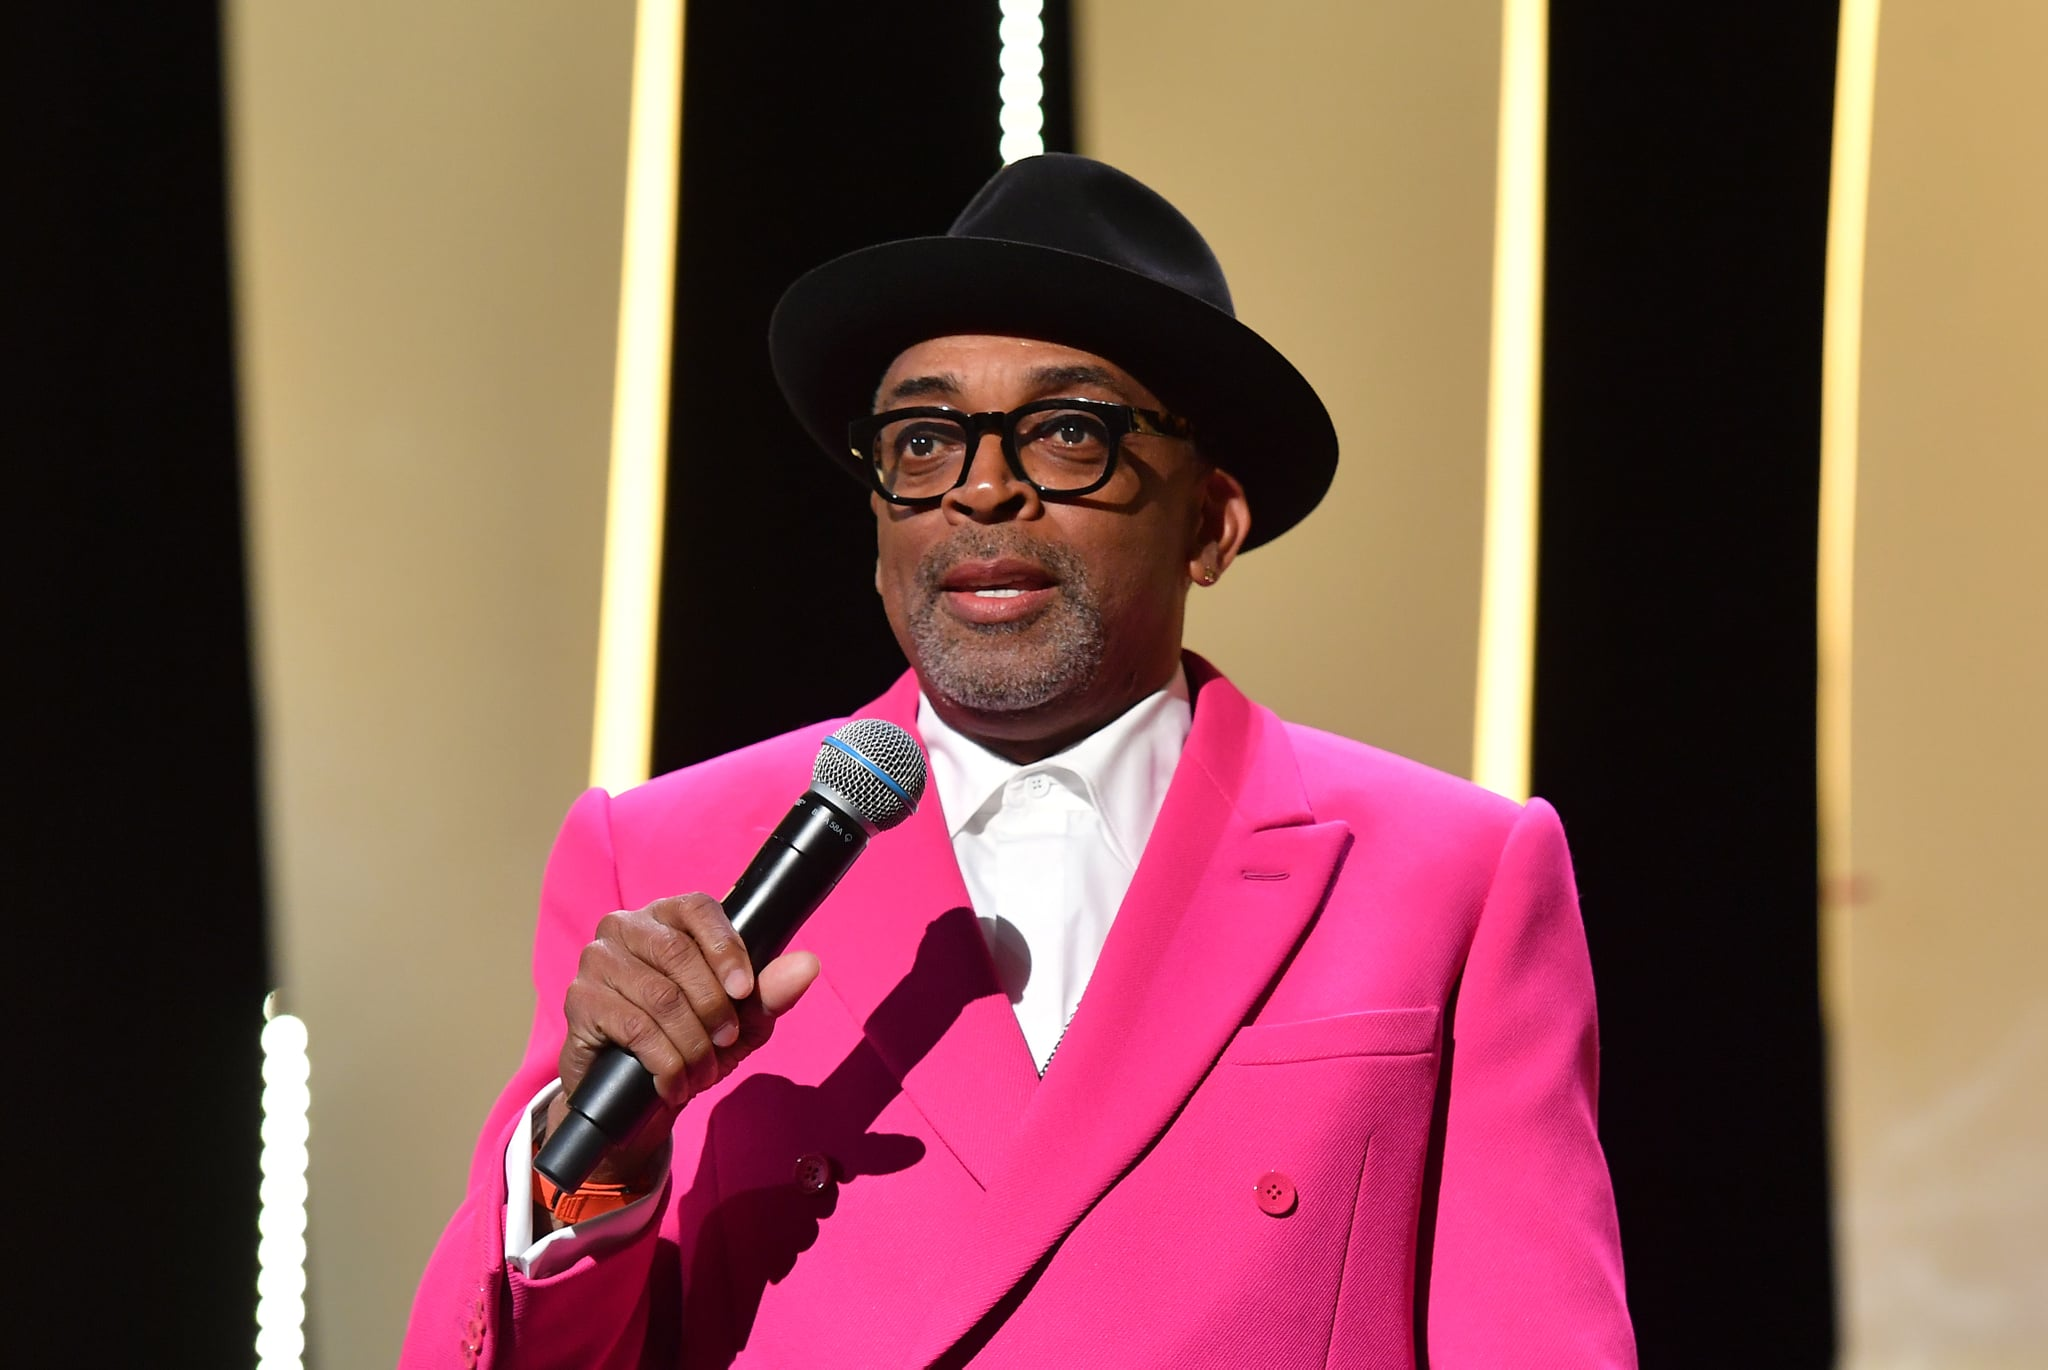 CANNES, FRANCE - JULY 06: Jury president and Director Spike Lee during the opening ceremony of the 74th annual Cannes Film Festival on July 06, 2021 in Cannes, France. (Photo by Stephane Cardinale - Corbis/Corbis via Getty Images)